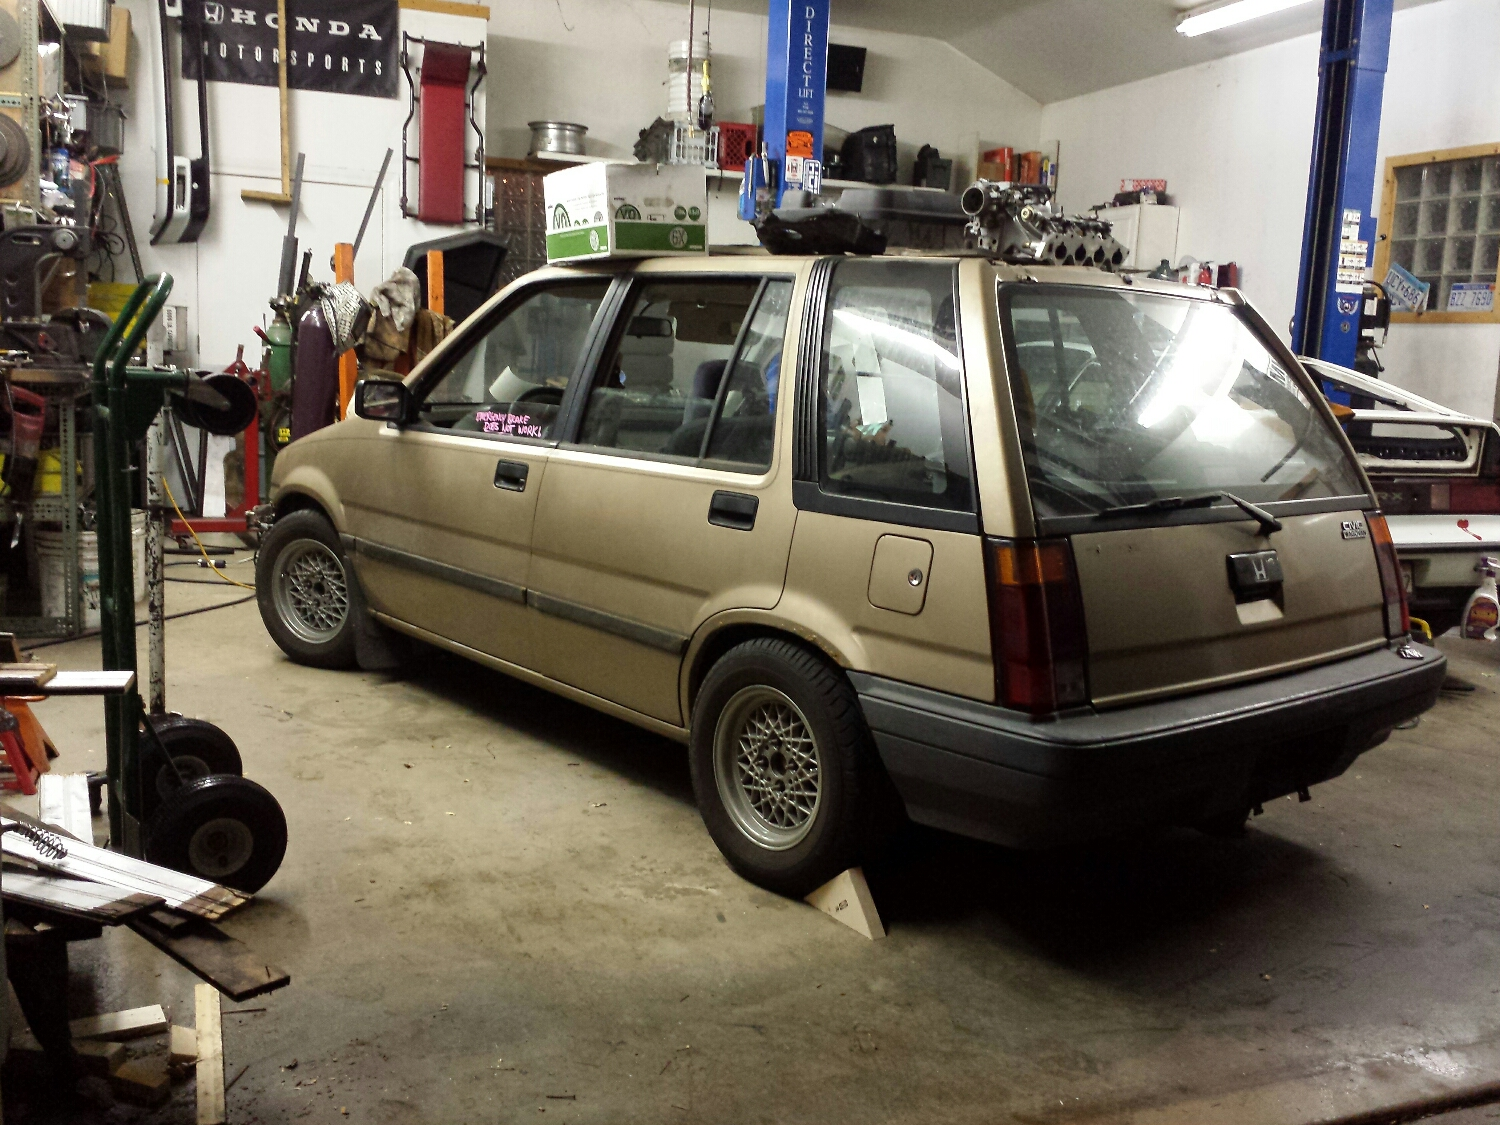 It might not look like much, but it has a modern Accord engine mated to a B18 transmission under the hood.